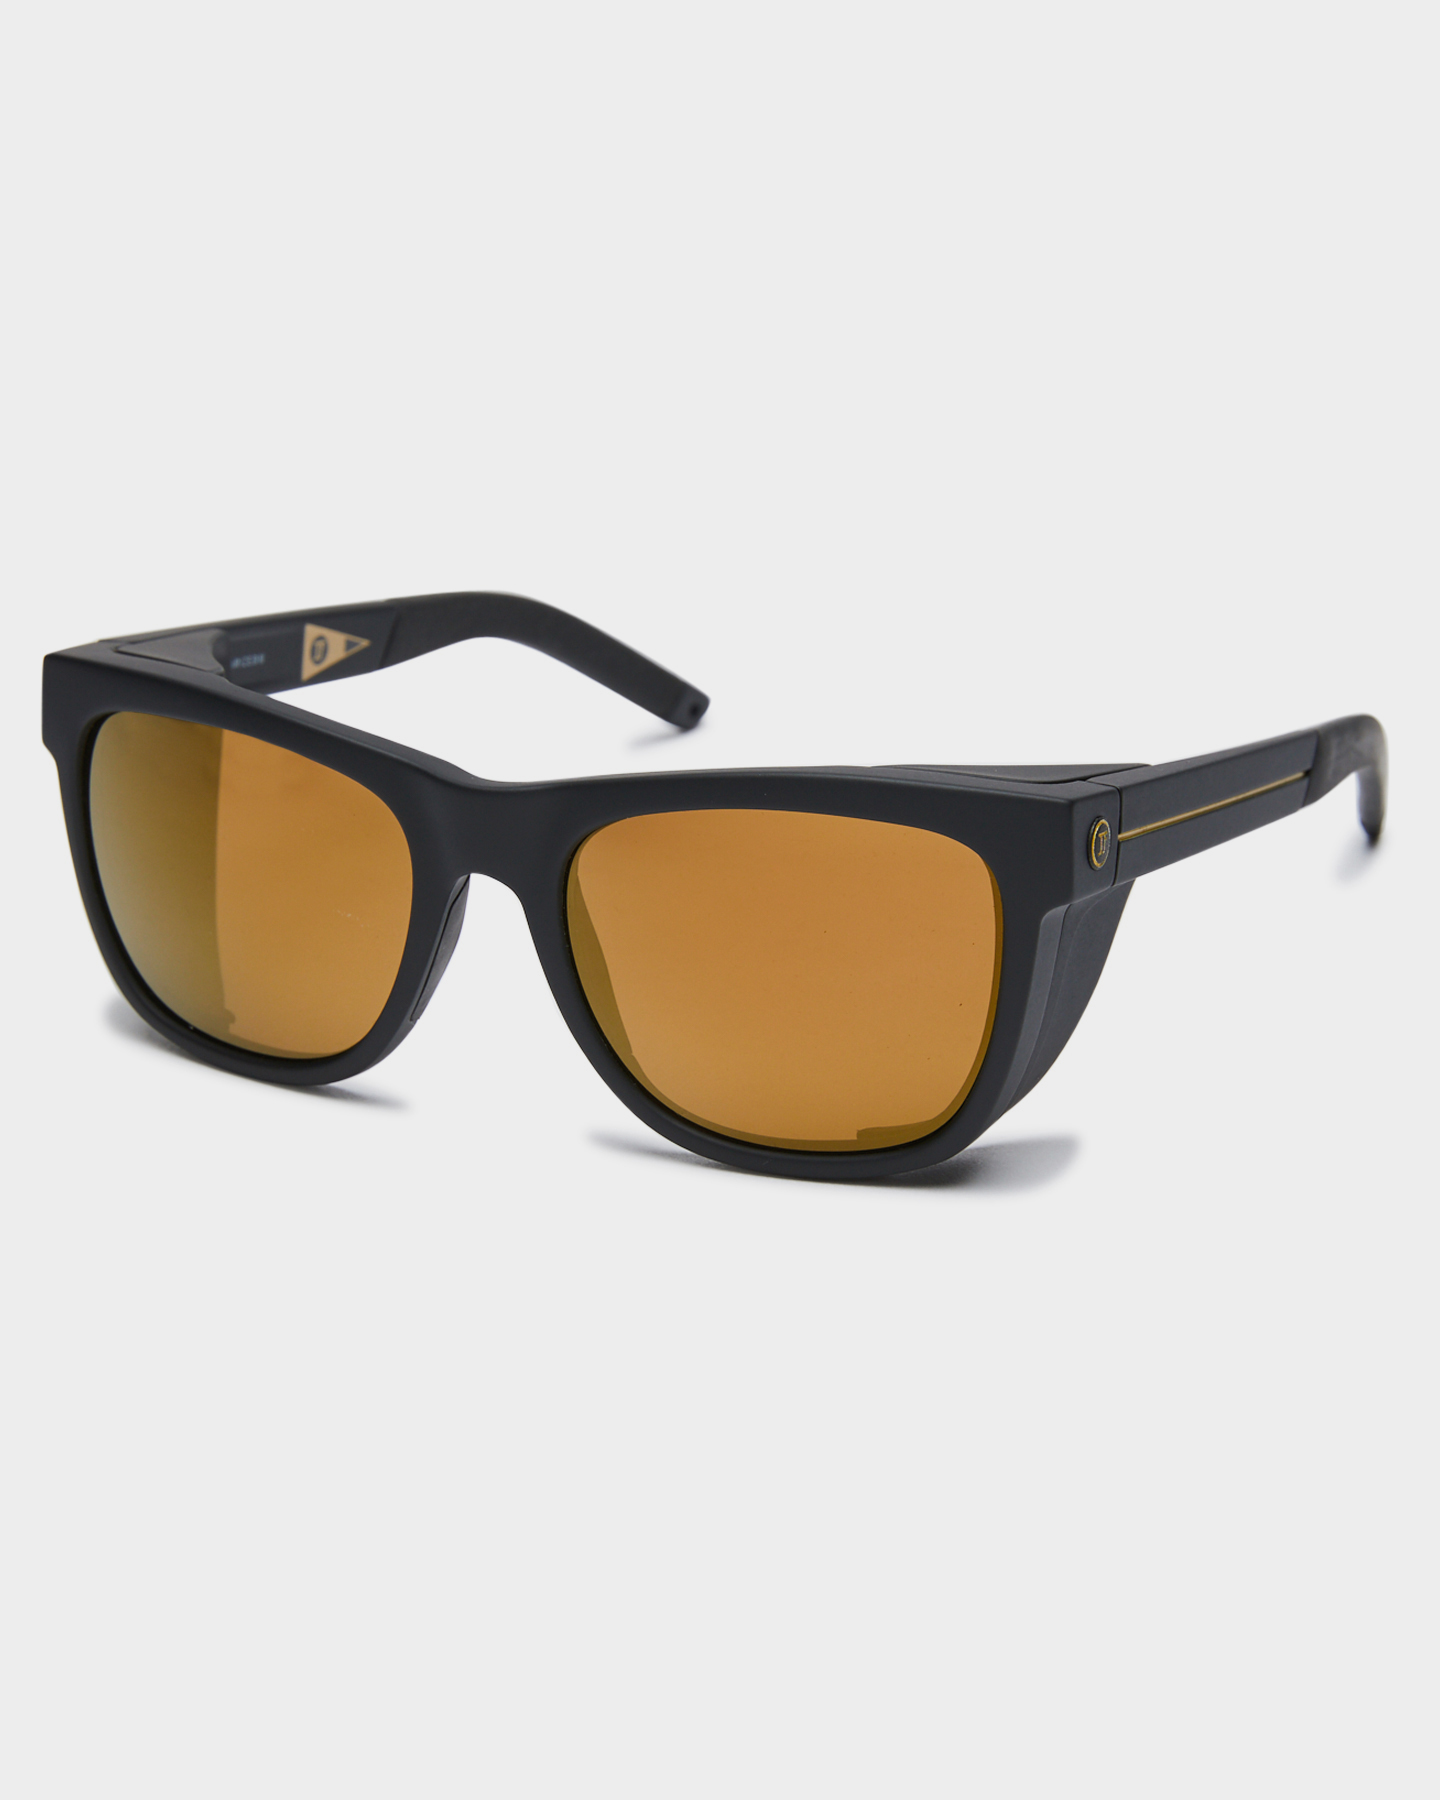 Electric Jjf12 Polarized Sunglasses Matte Black Bronze